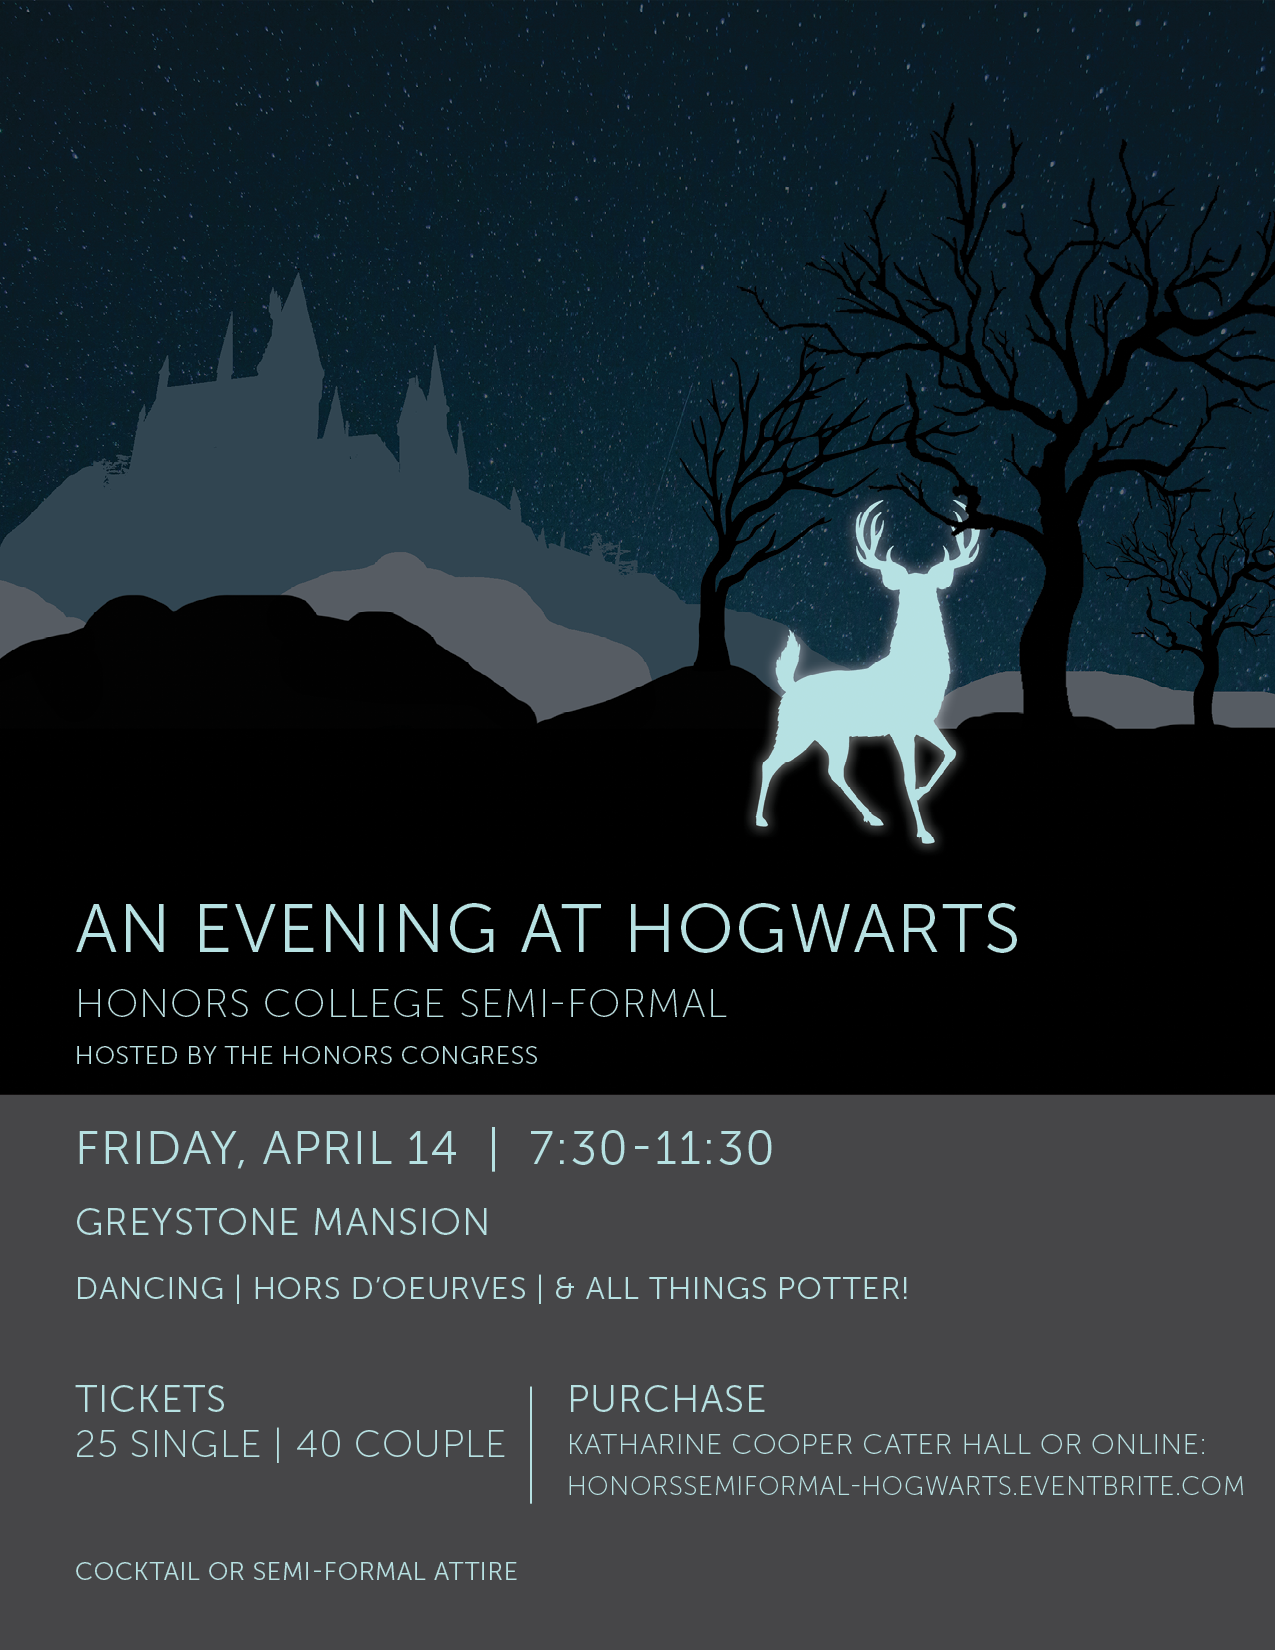 Flyer for the Honors Congress formal an evening at hogwarts featuring a patronus and hogwarts in the background